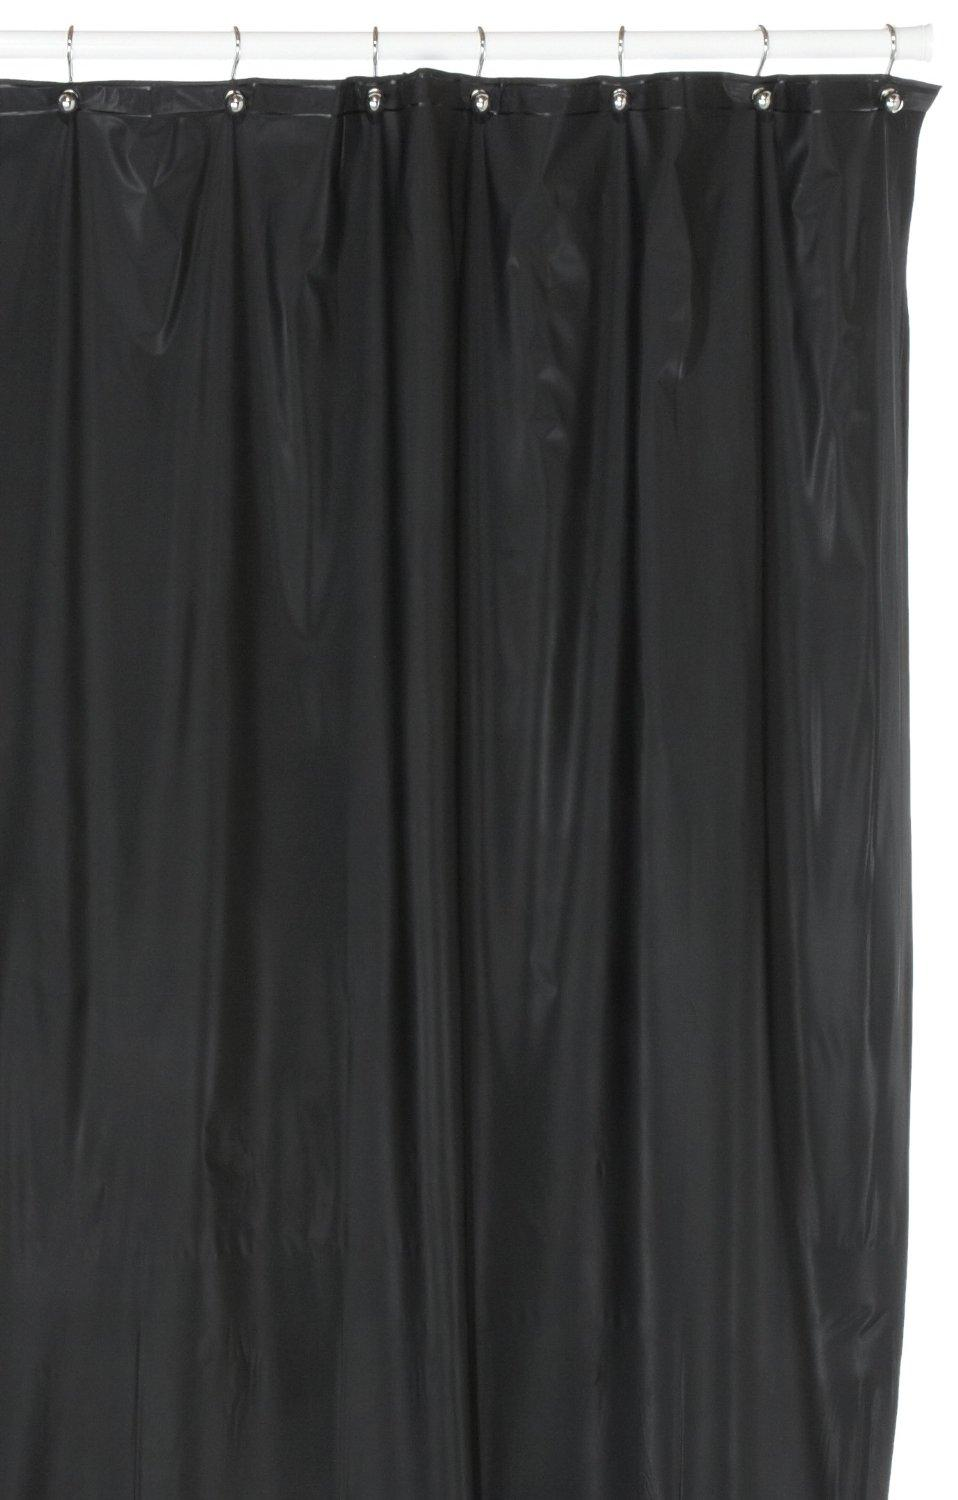 Attirant Hotel Quality 8 Gauge Vinyl Shower Curtain Liner Black